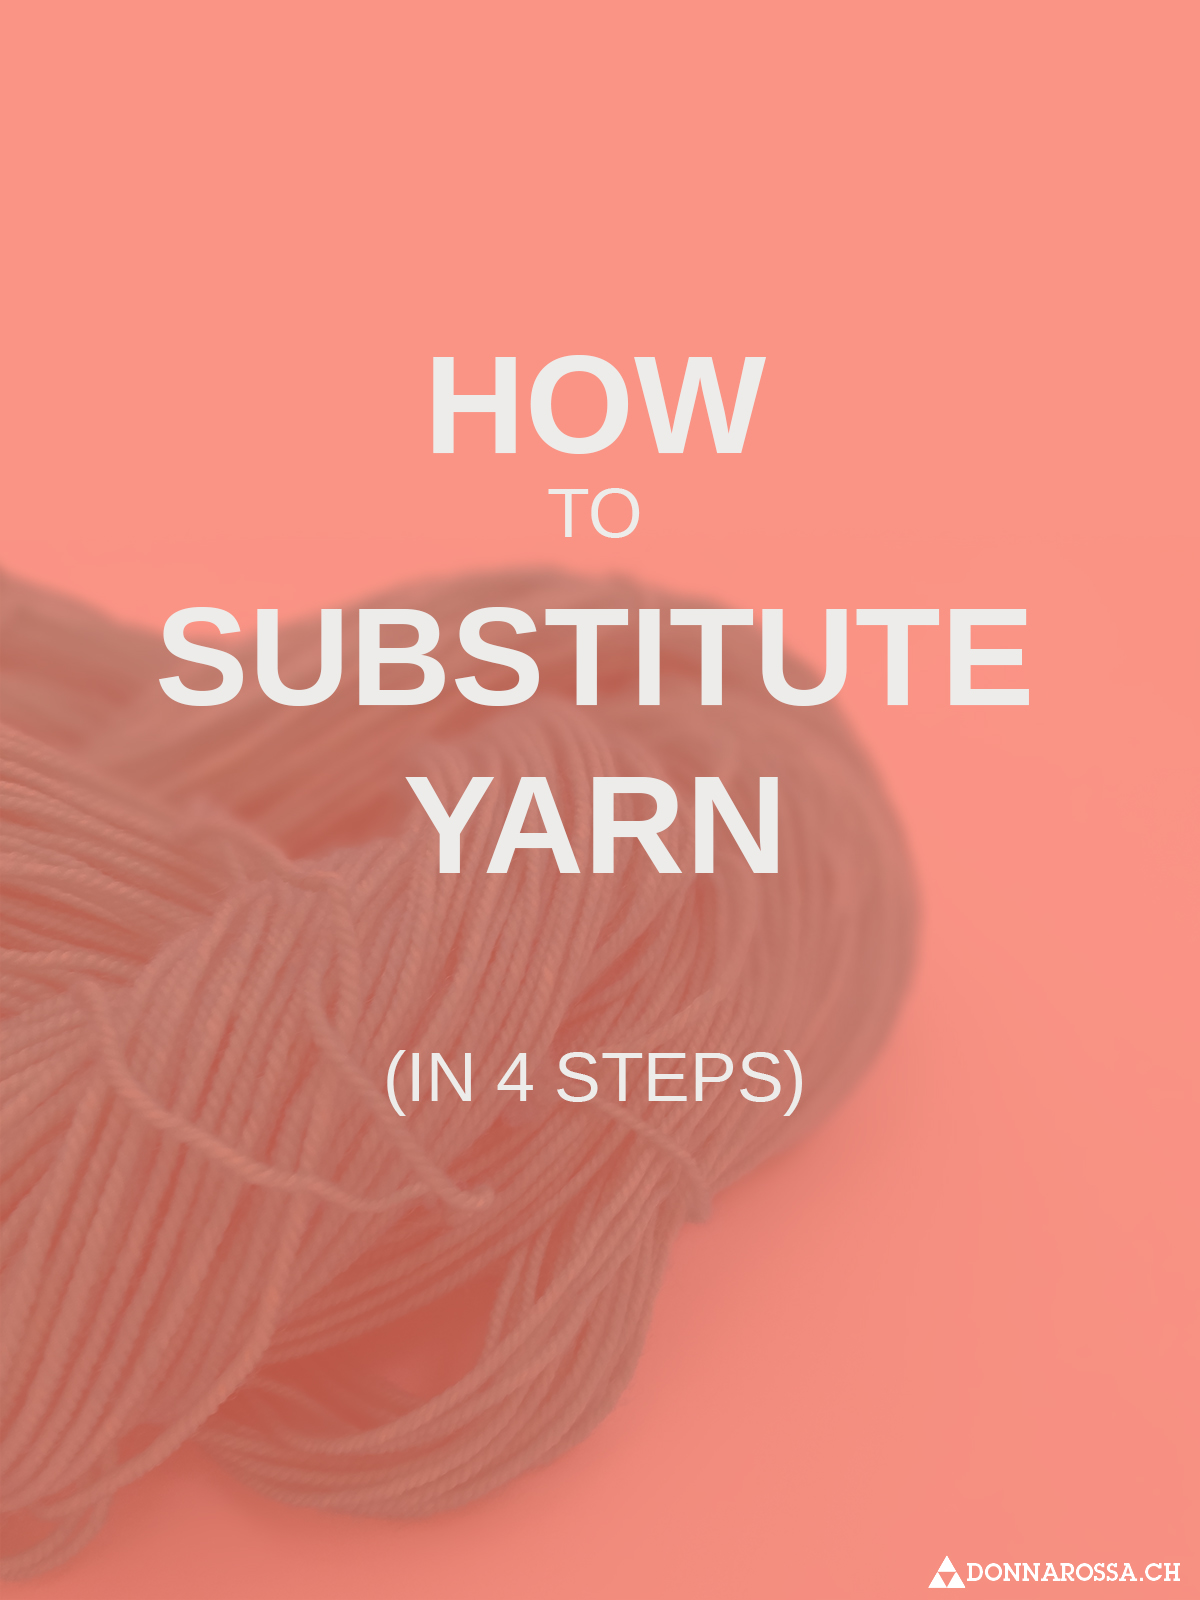 how to substitute yarn in 4 steps